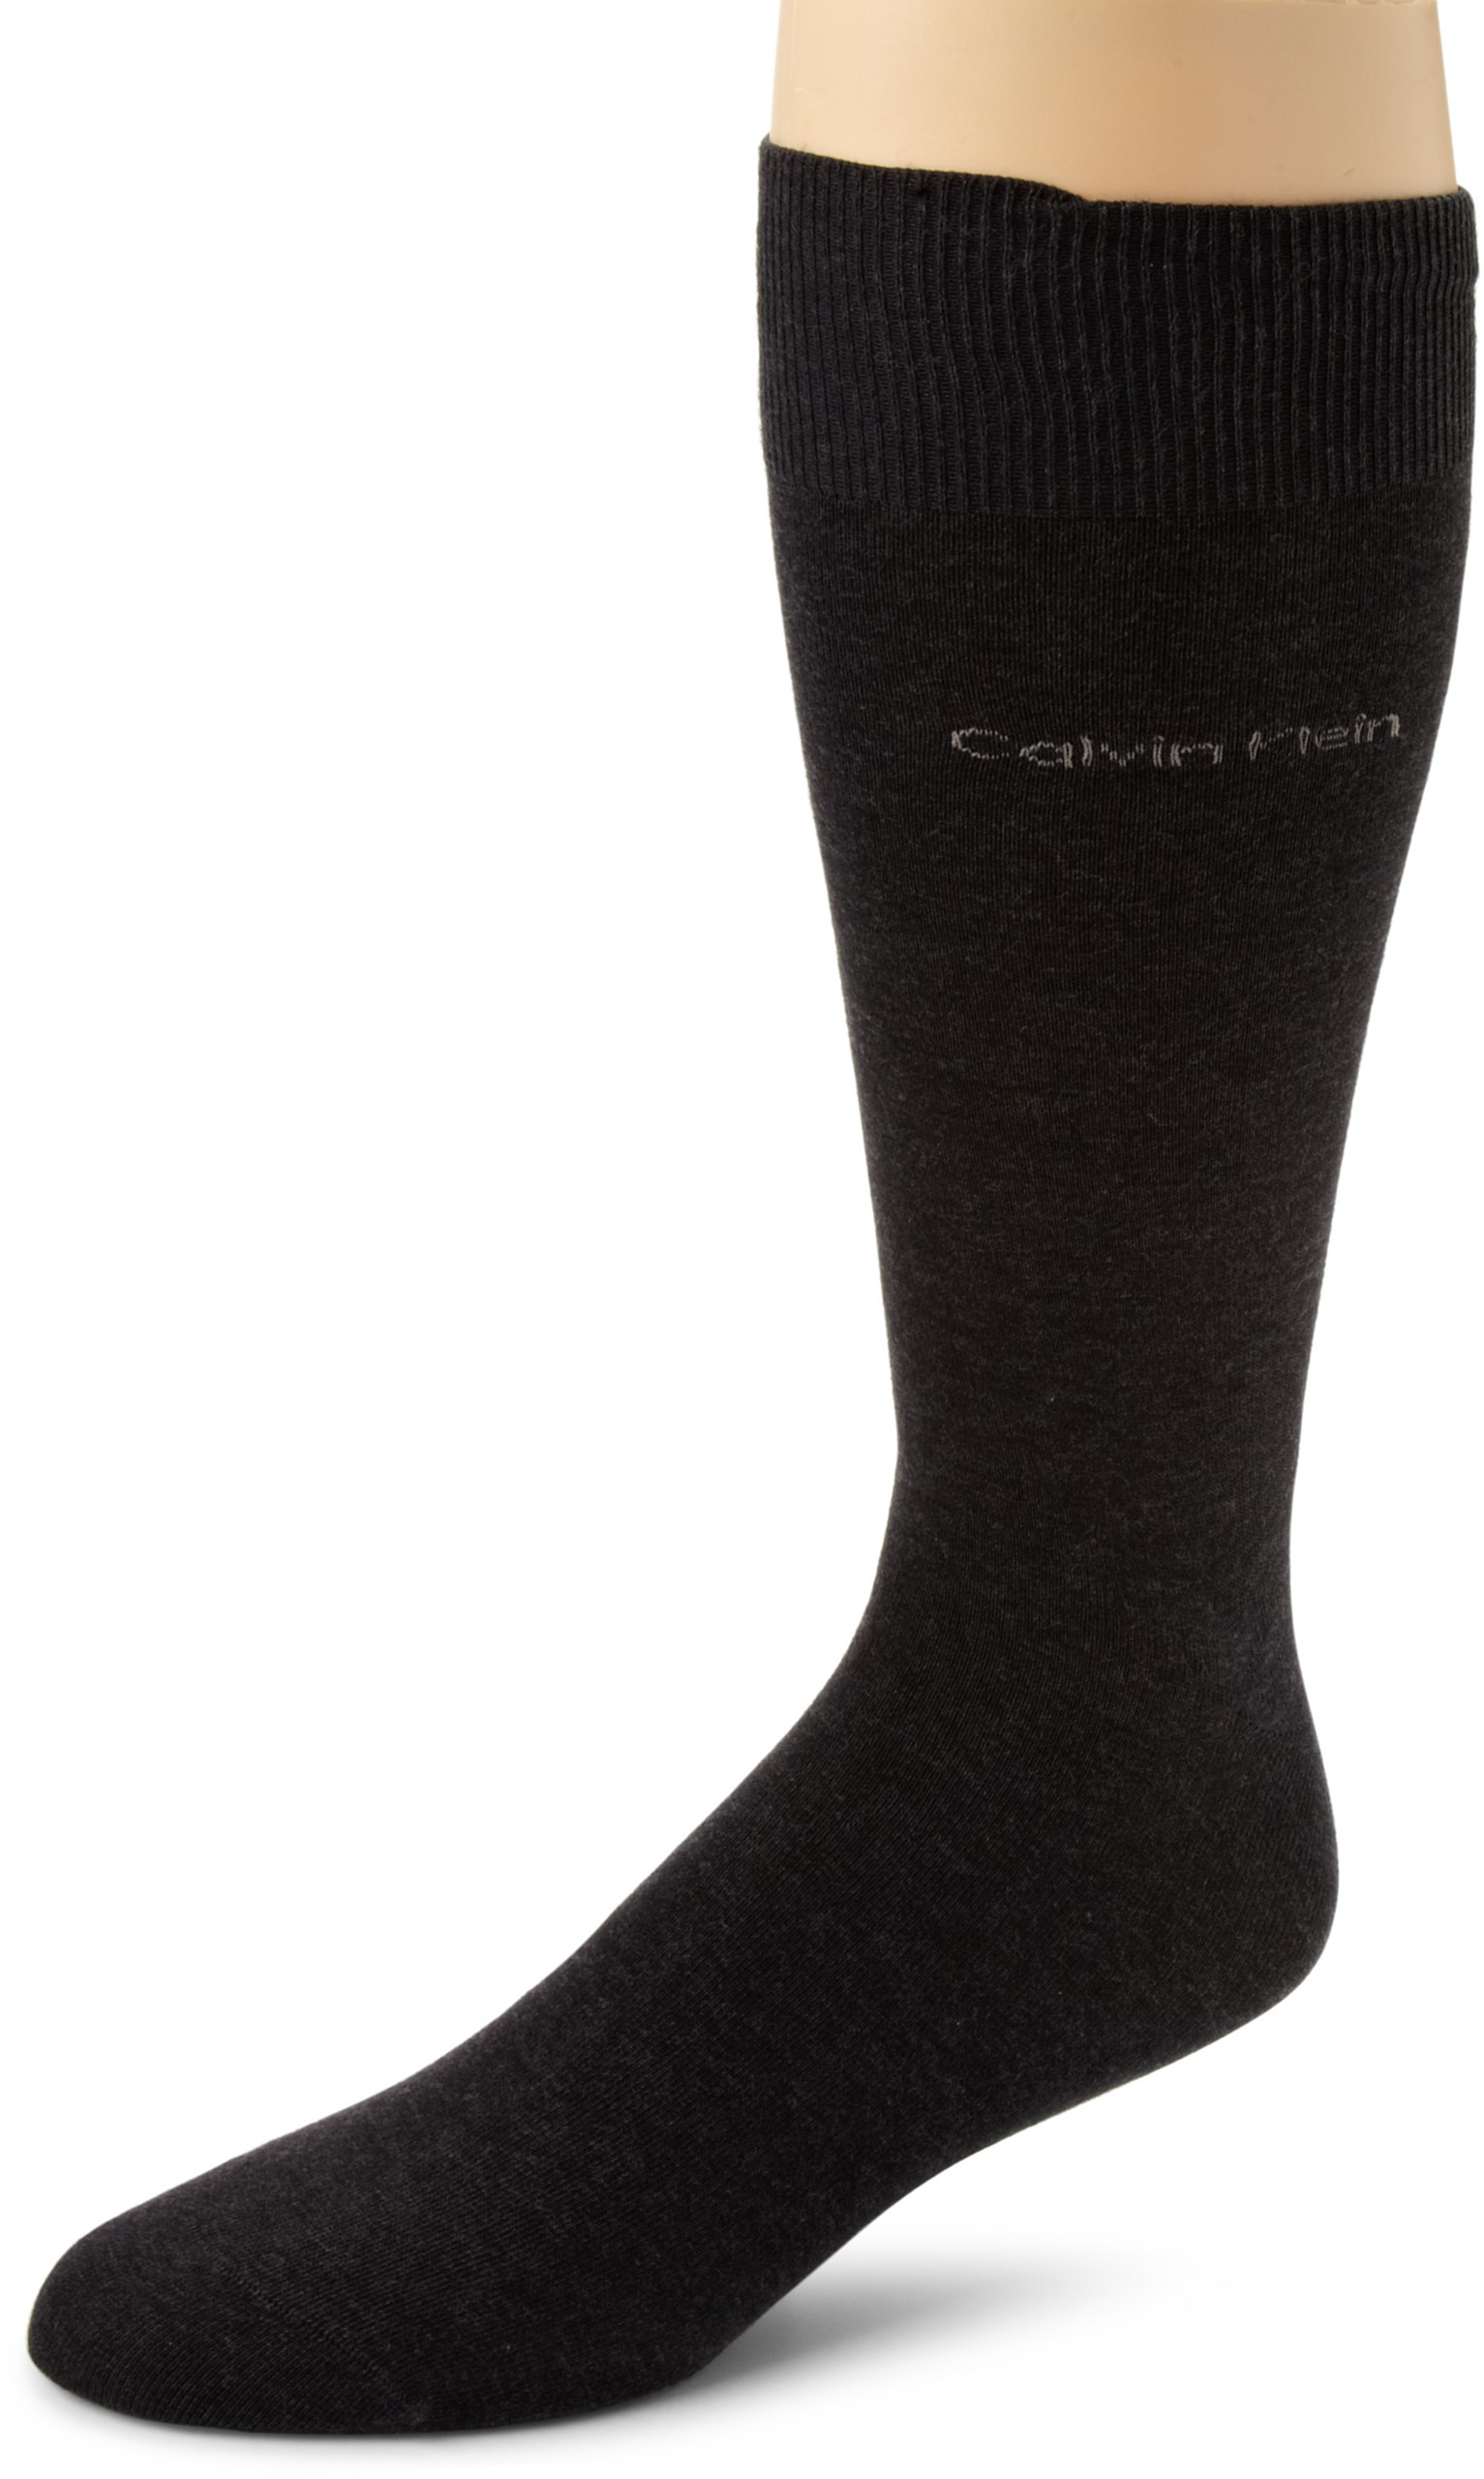 Calvin Klein Men's Egyptian Cotton Dress Socks,Graphite Heather,Shoe Size 7-12 by Calvin Klein (Image #1)